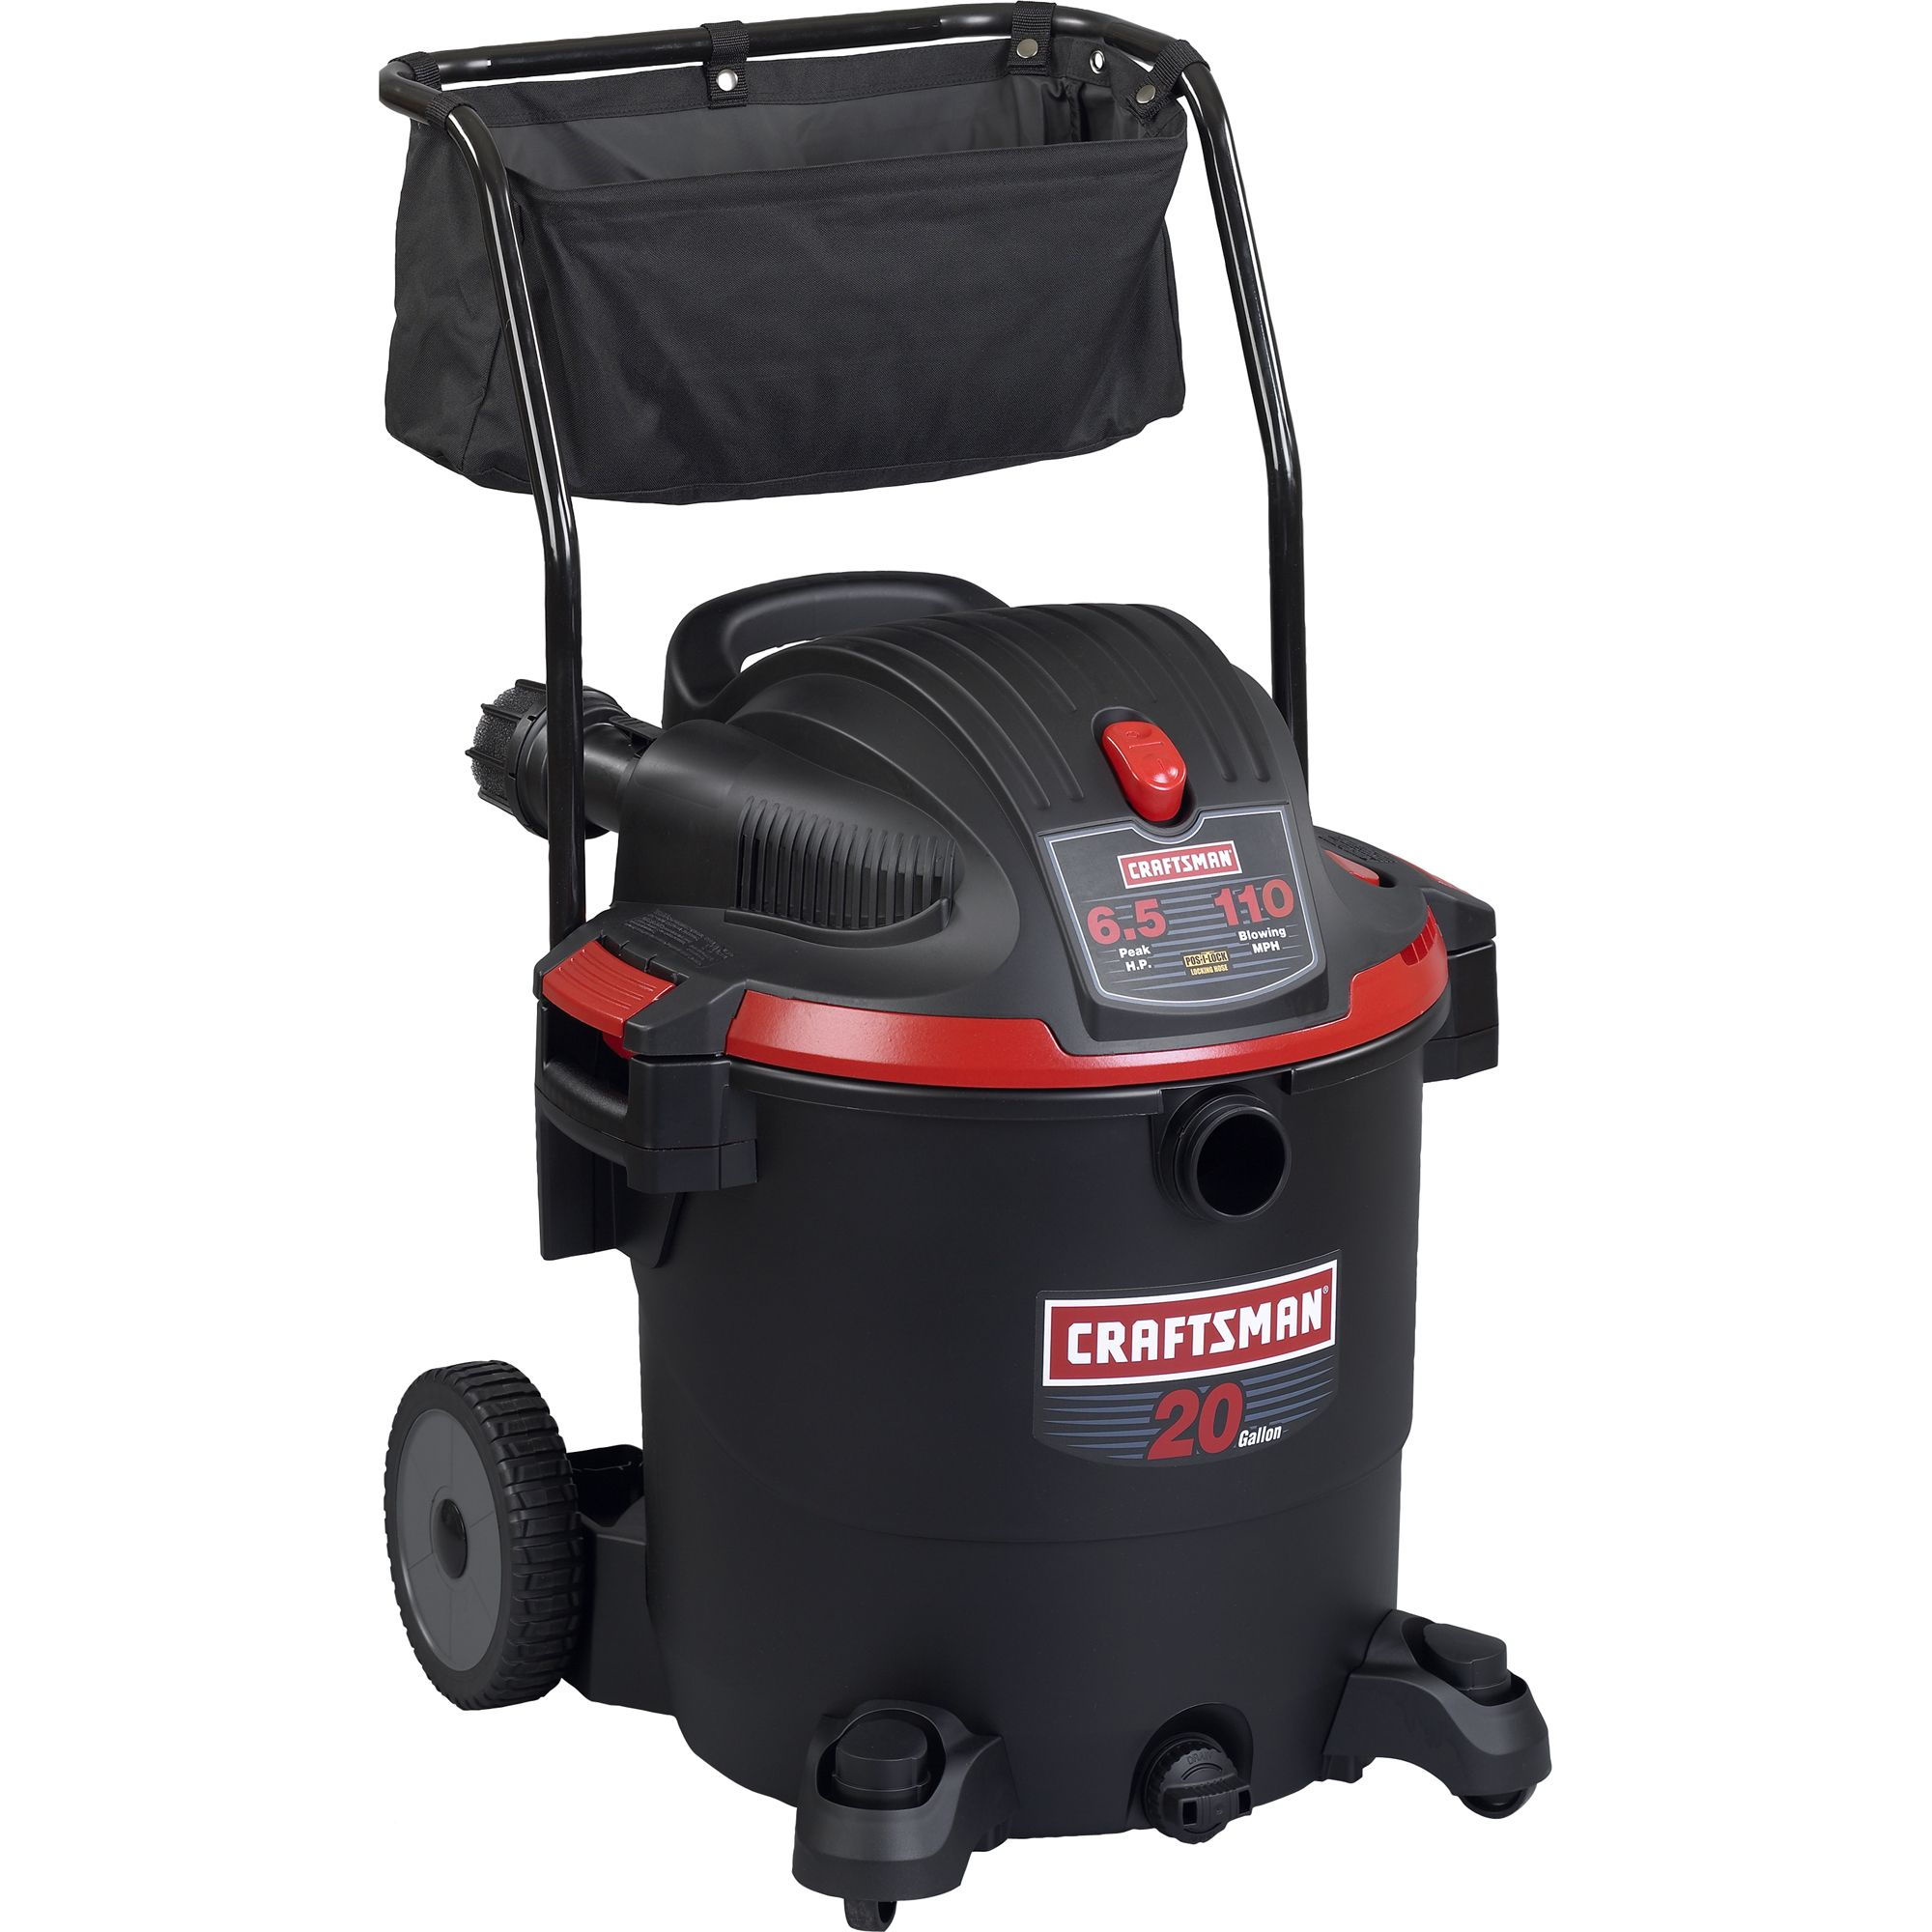 Sears vacuums coupons